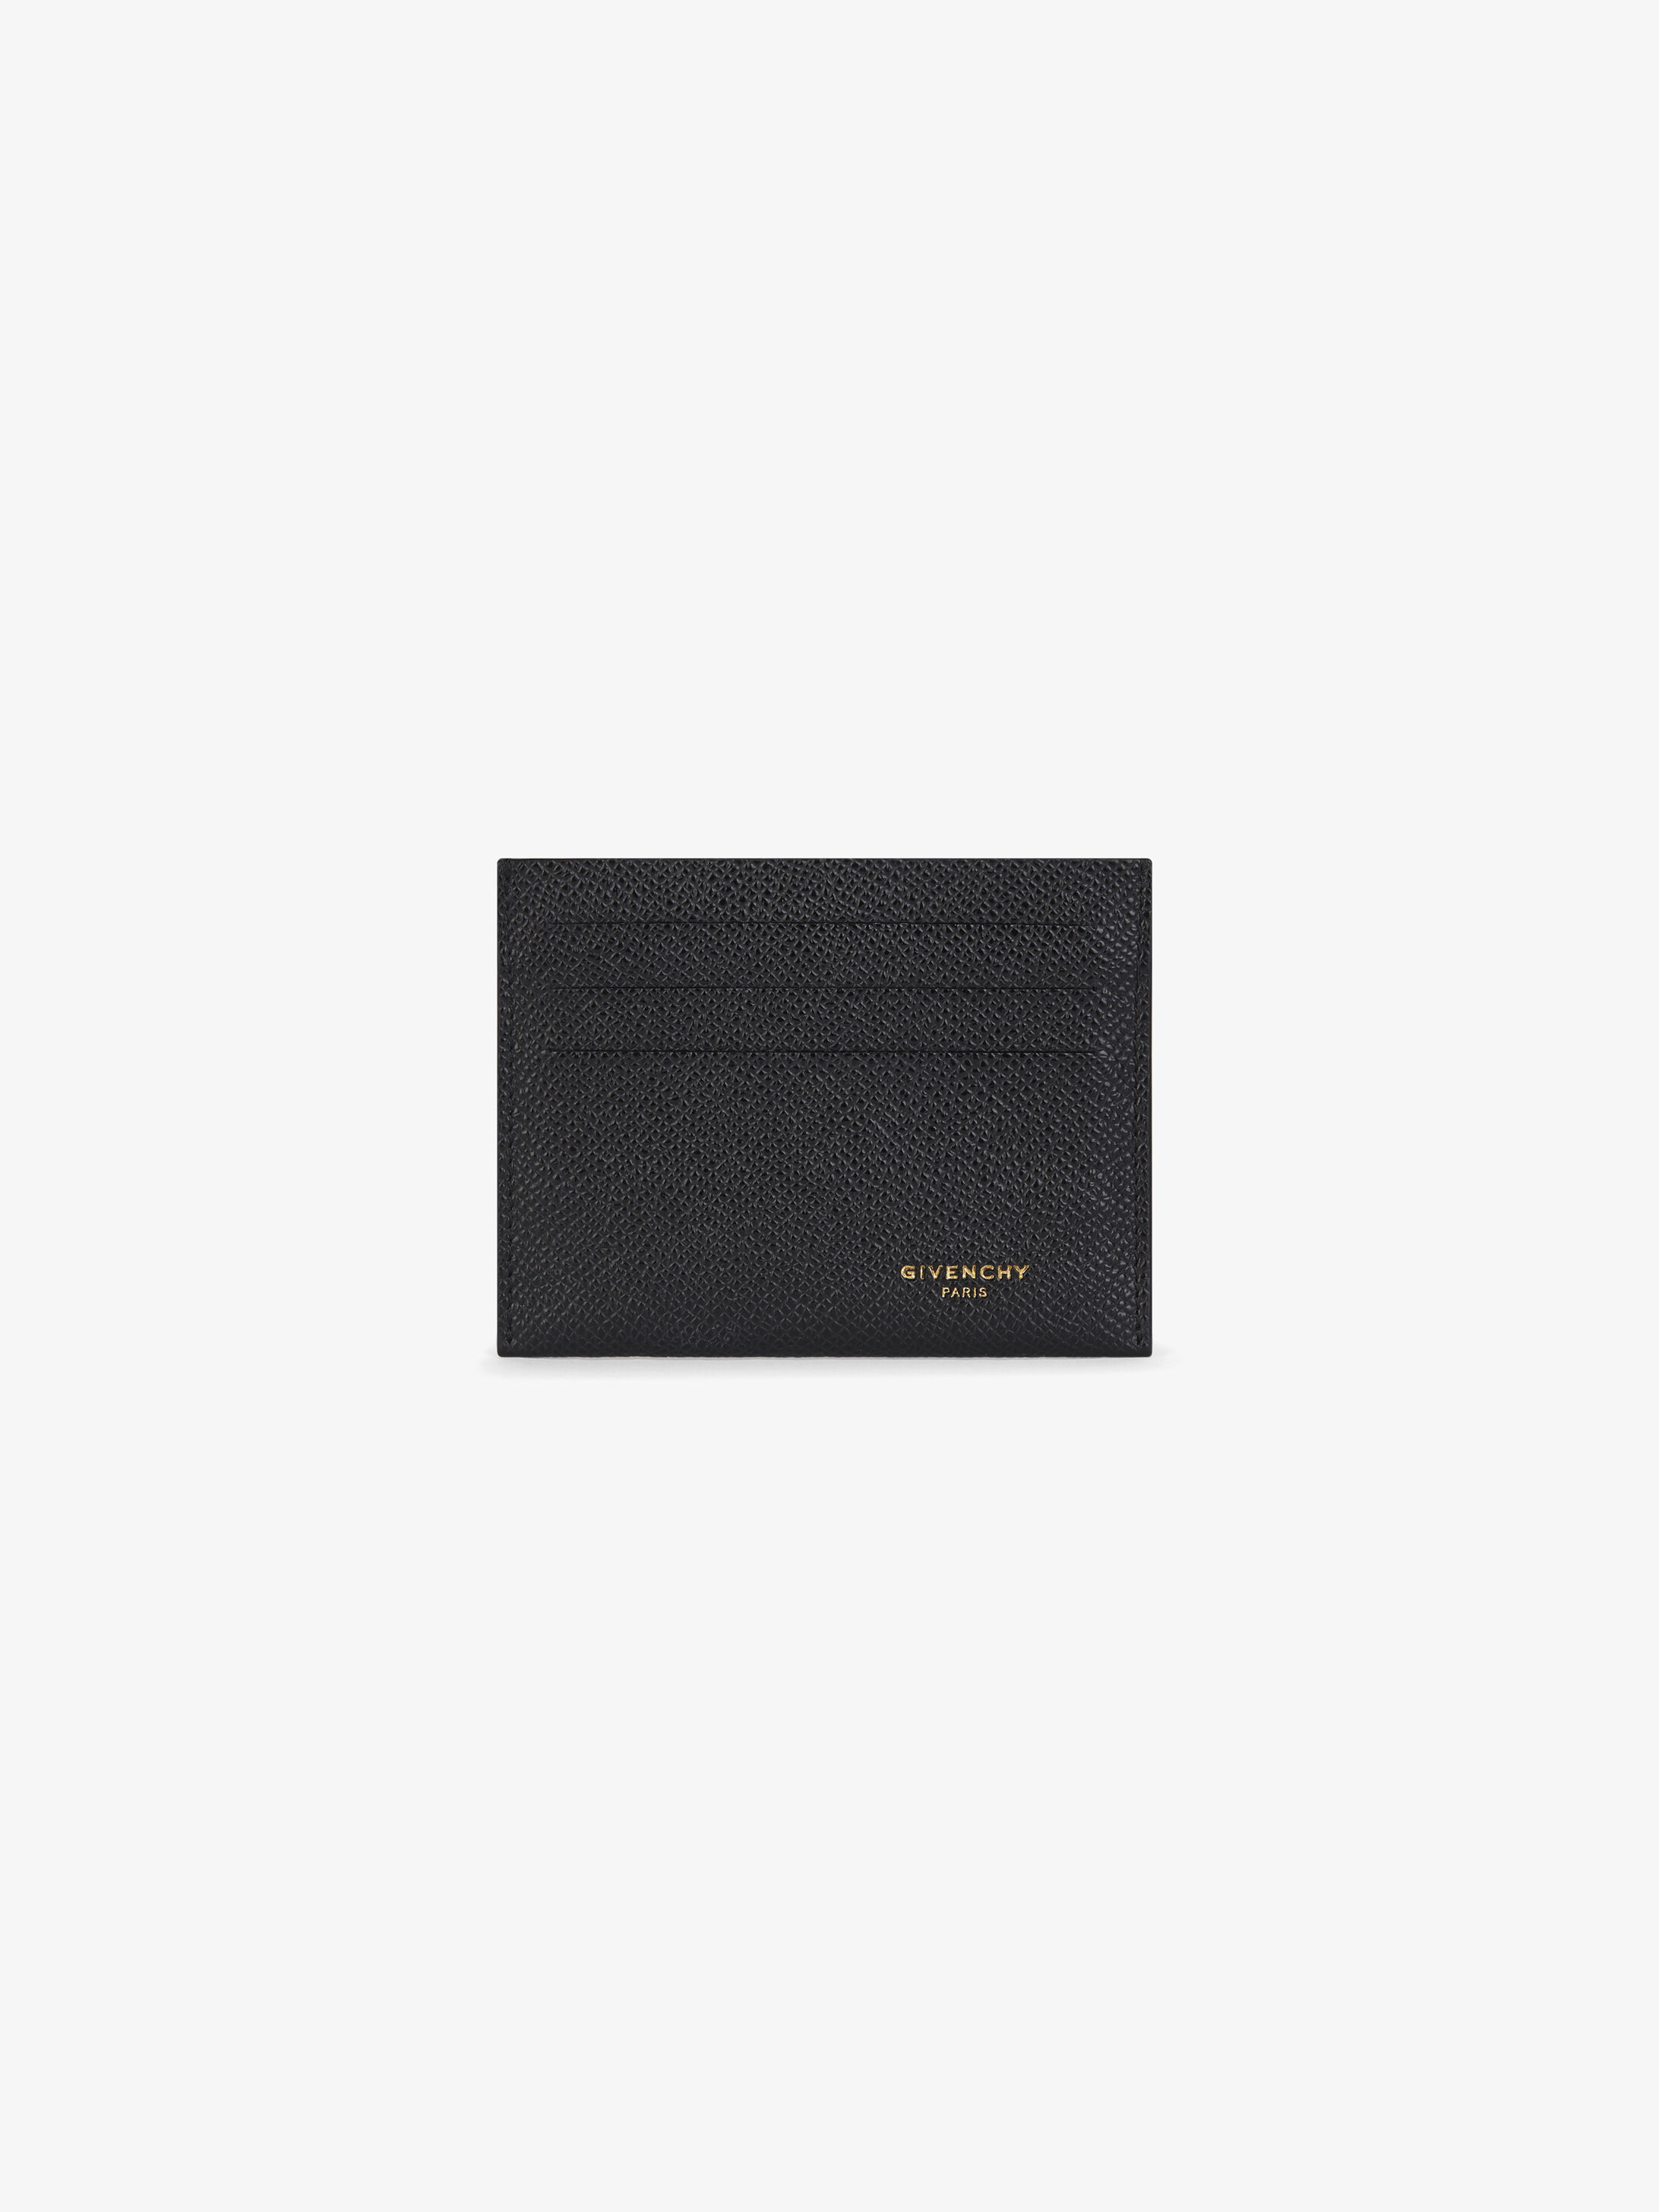 Men's Key and Card holders collection by Givenchy